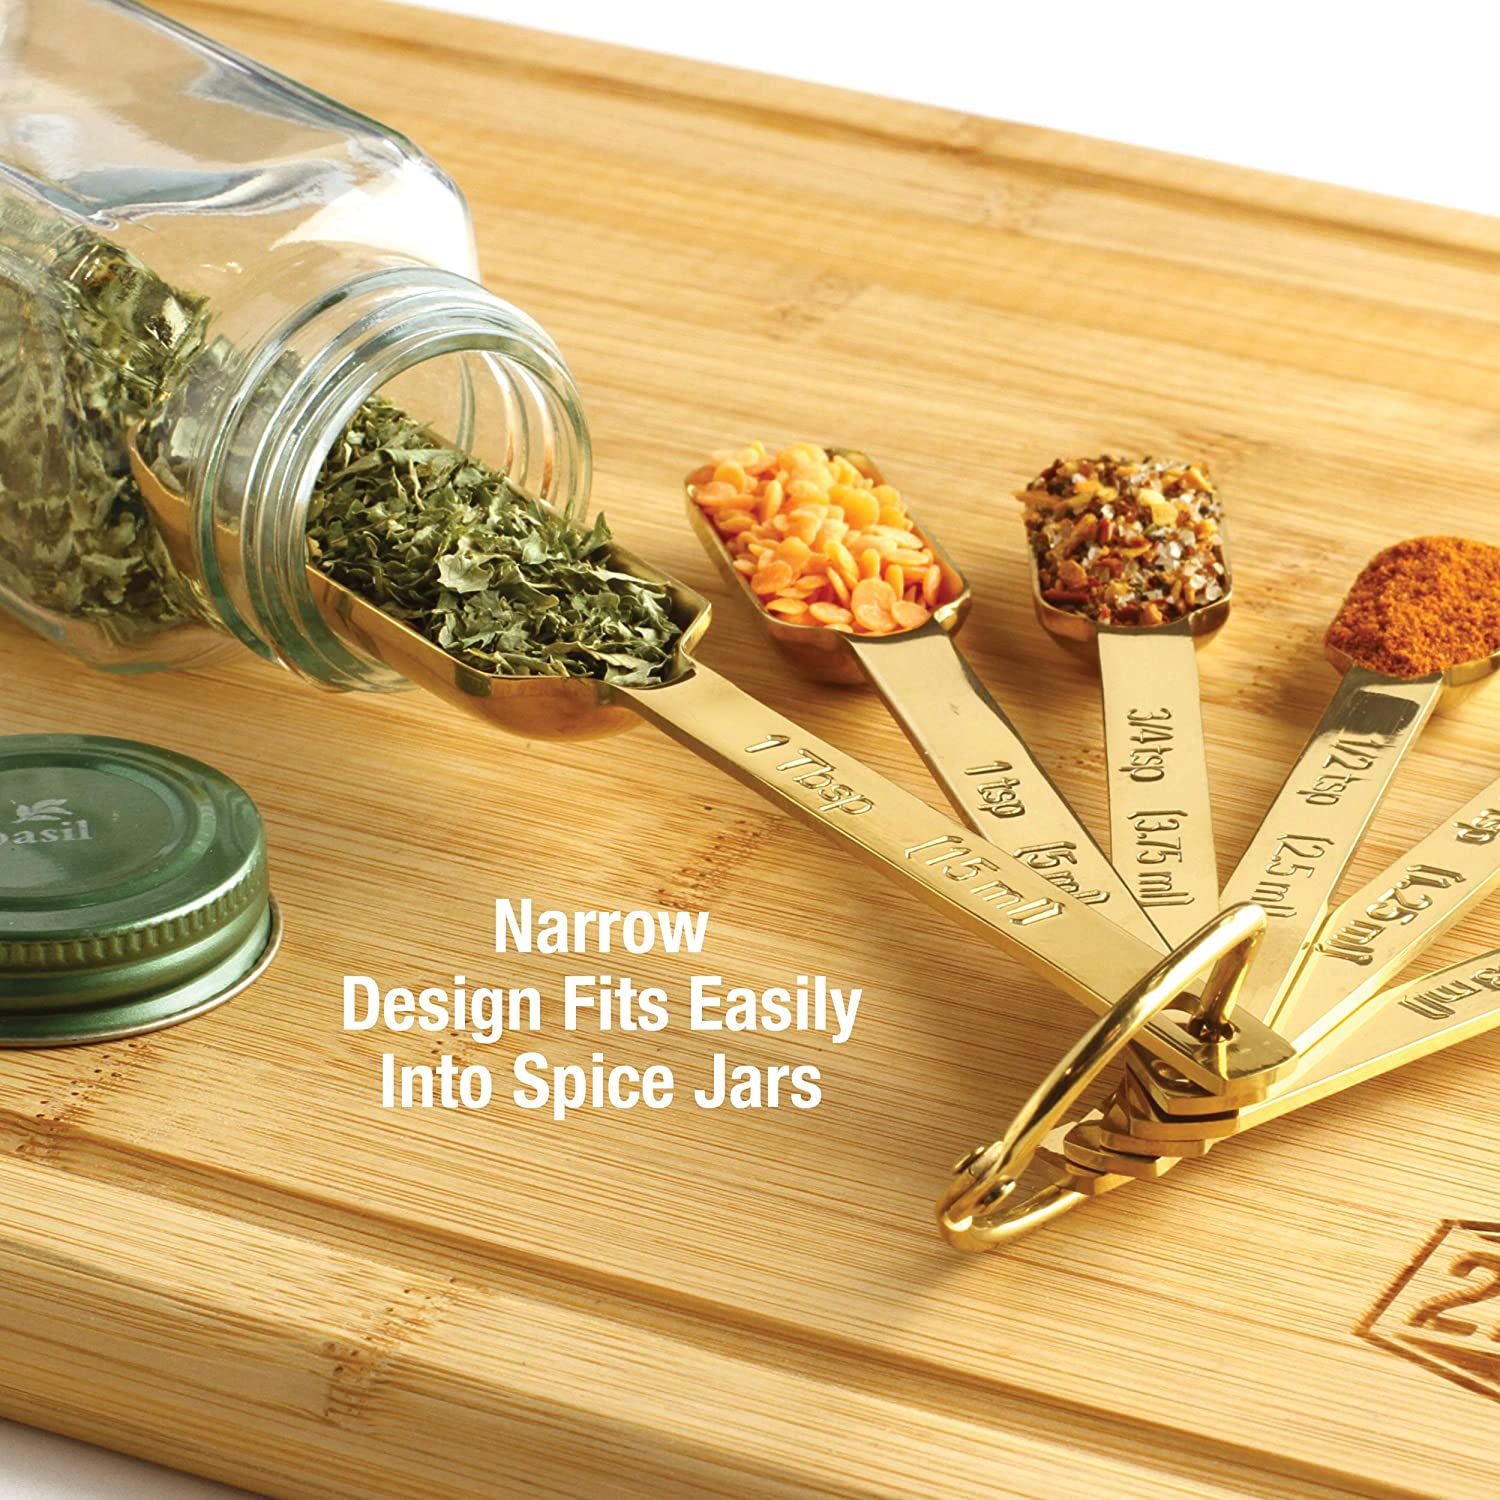 Premium Heavy-Duty Stainless Steel Set of 7 Includes Leveler Long Handle Design Fits in Spice Jar 2lbDepot Gold Measuring Spoons Narrow